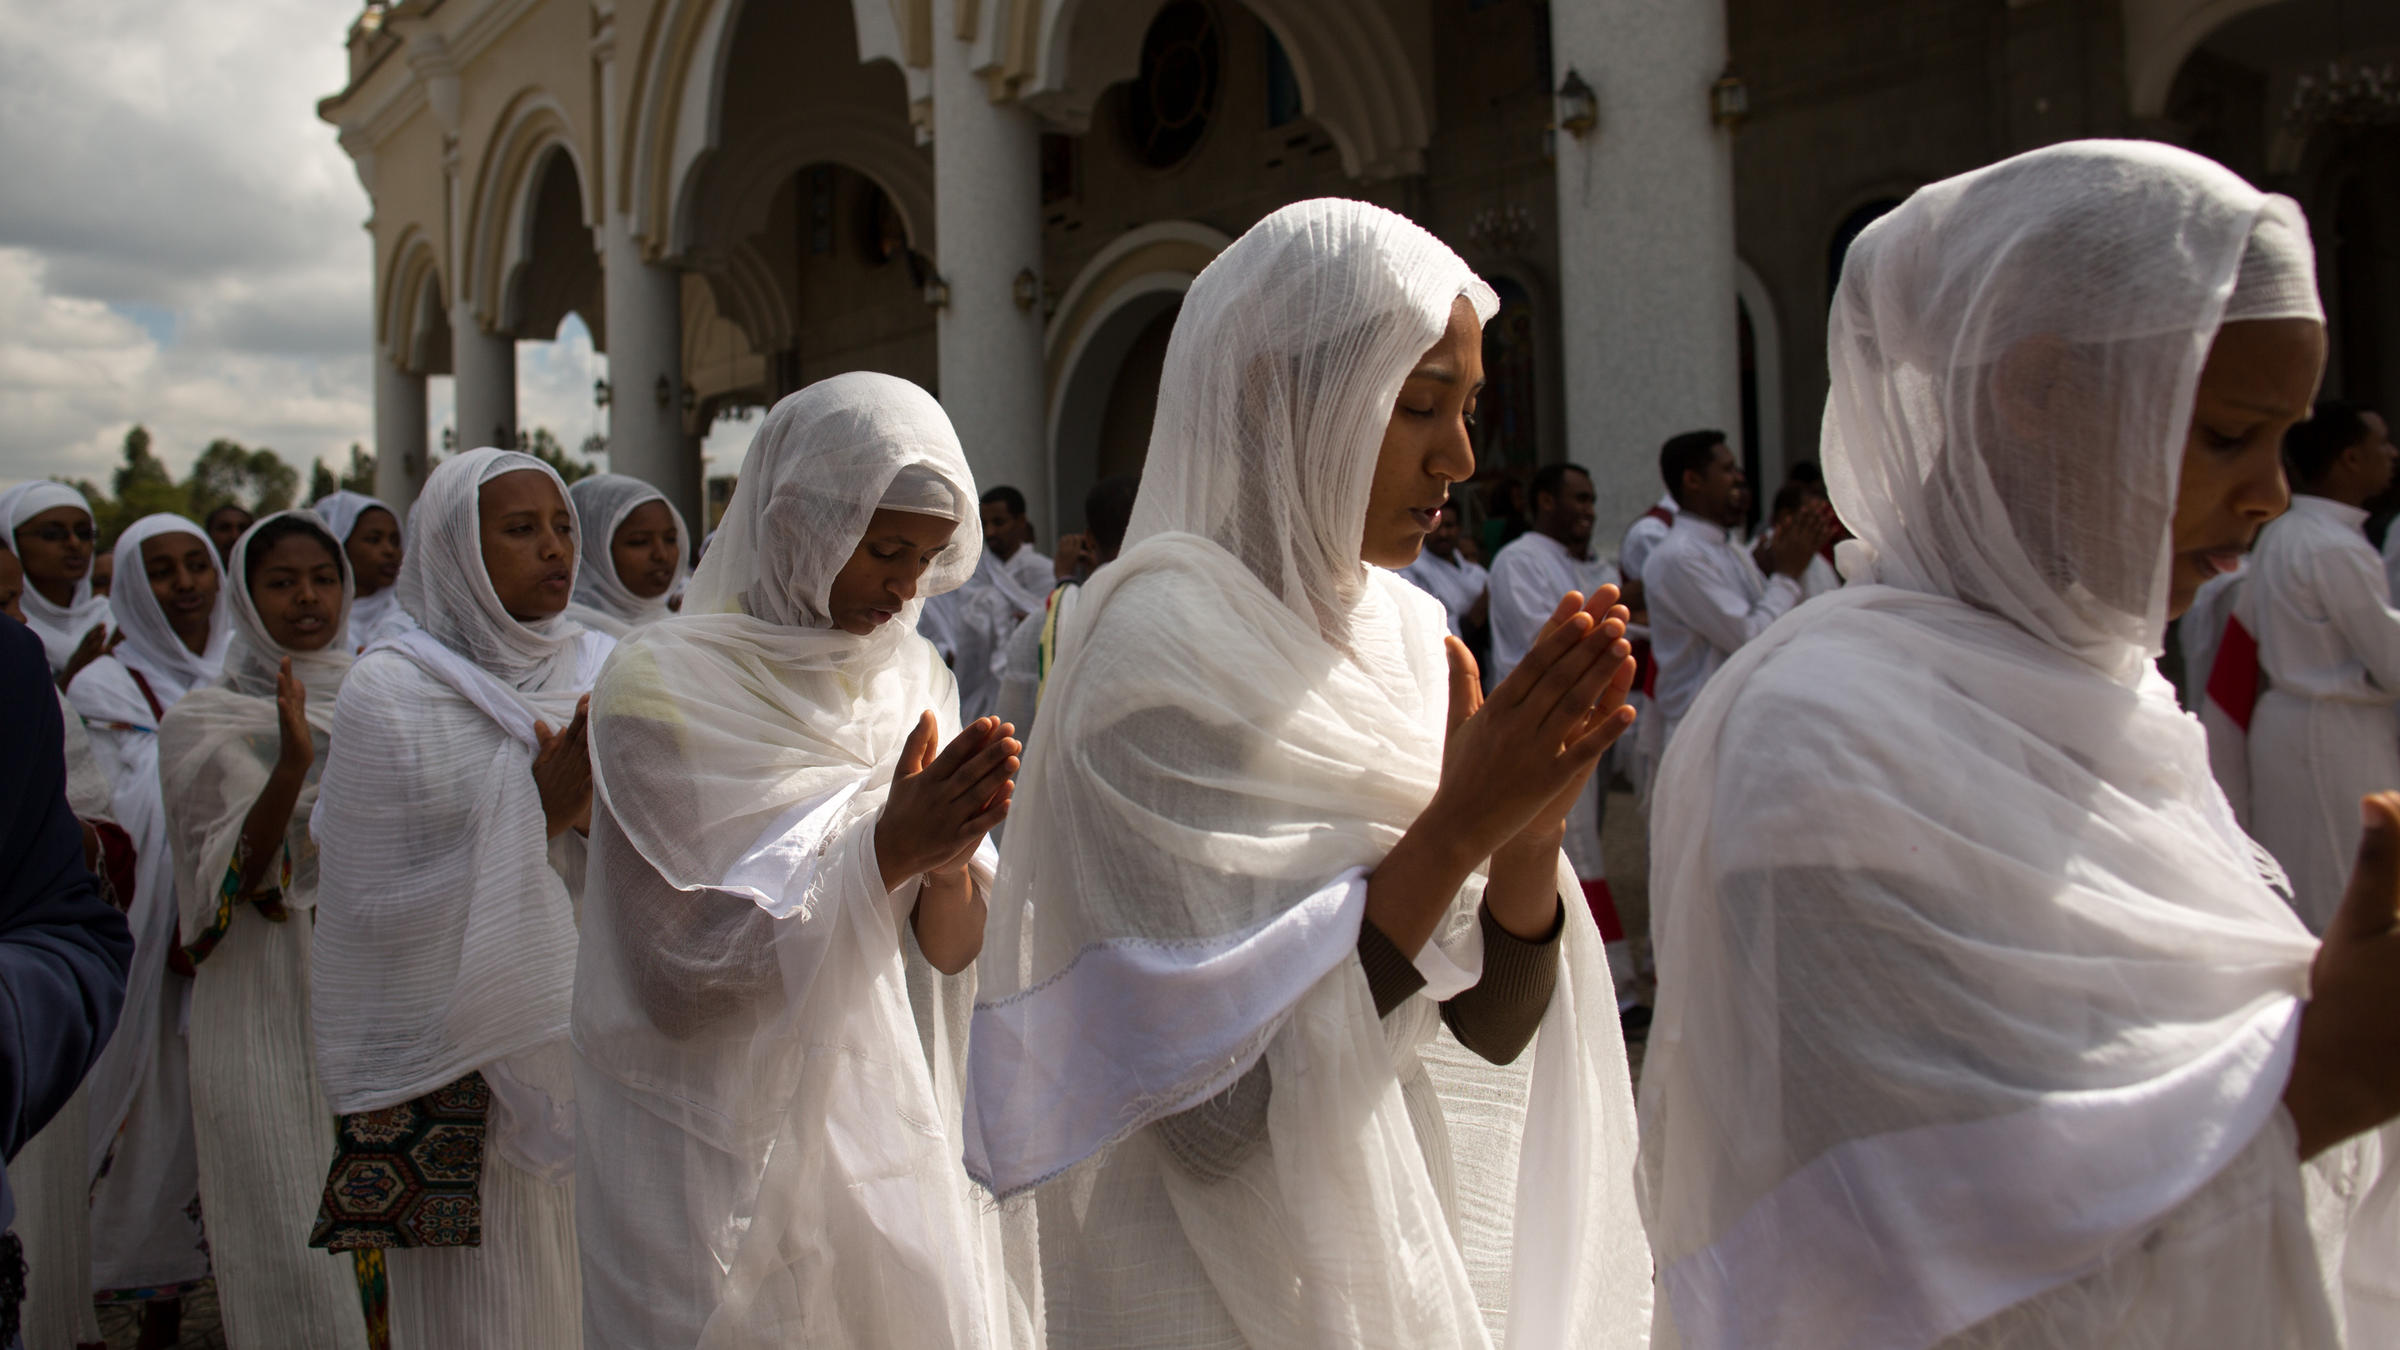 cfb4ad4fc80 Participants sing during a wedding ceremony at Bole Medhane Alem (Savior of  the World) Cathedral in Addis Ababa